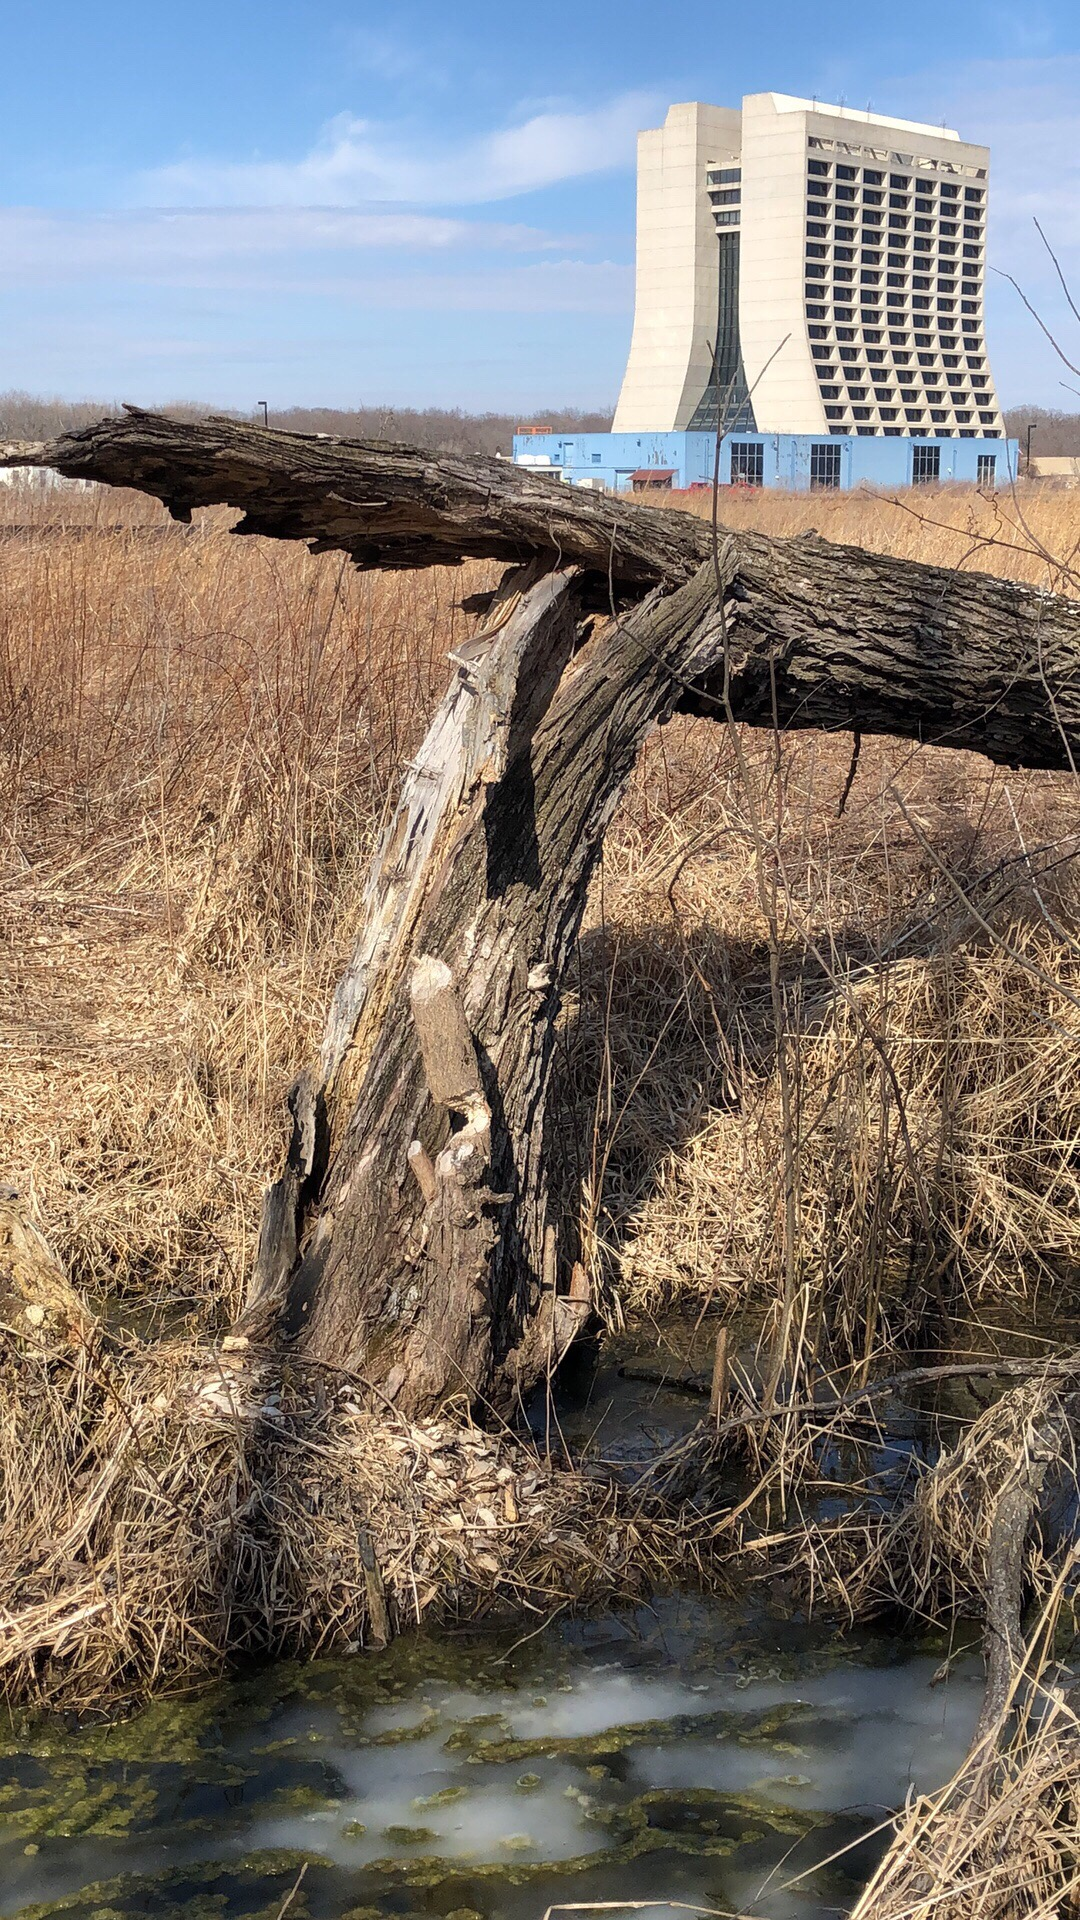 A beaver has been busy at work here in the Tevatron infield. And in Wilson Hall, Fermilab employees are busy at work, too. nature, landscape, tree, grass, building, Wilson Hall, sky Photo: Chris Ader